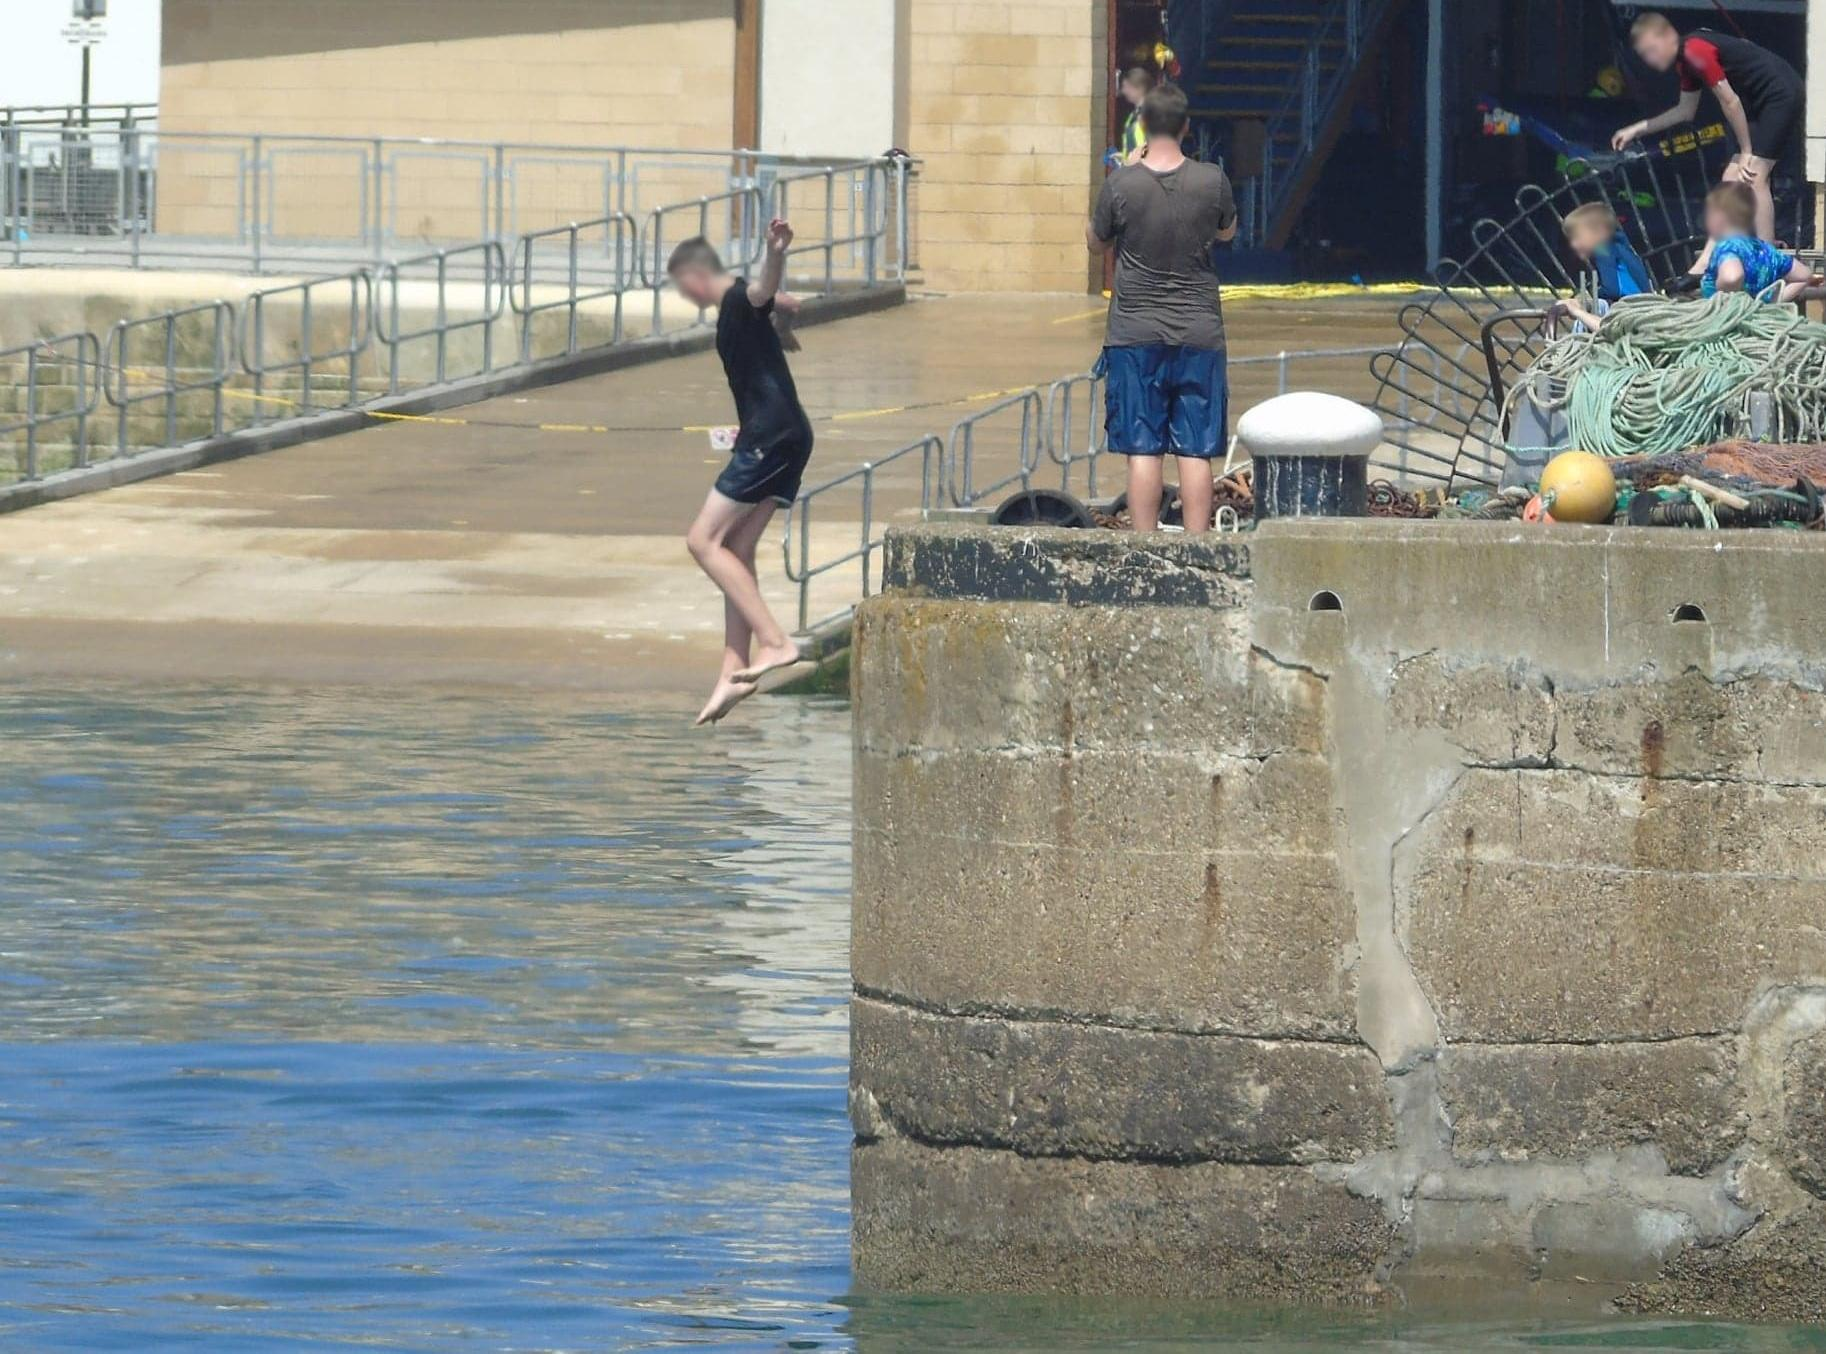 Picture showing the practice of 'tombstoning' in Scarborough